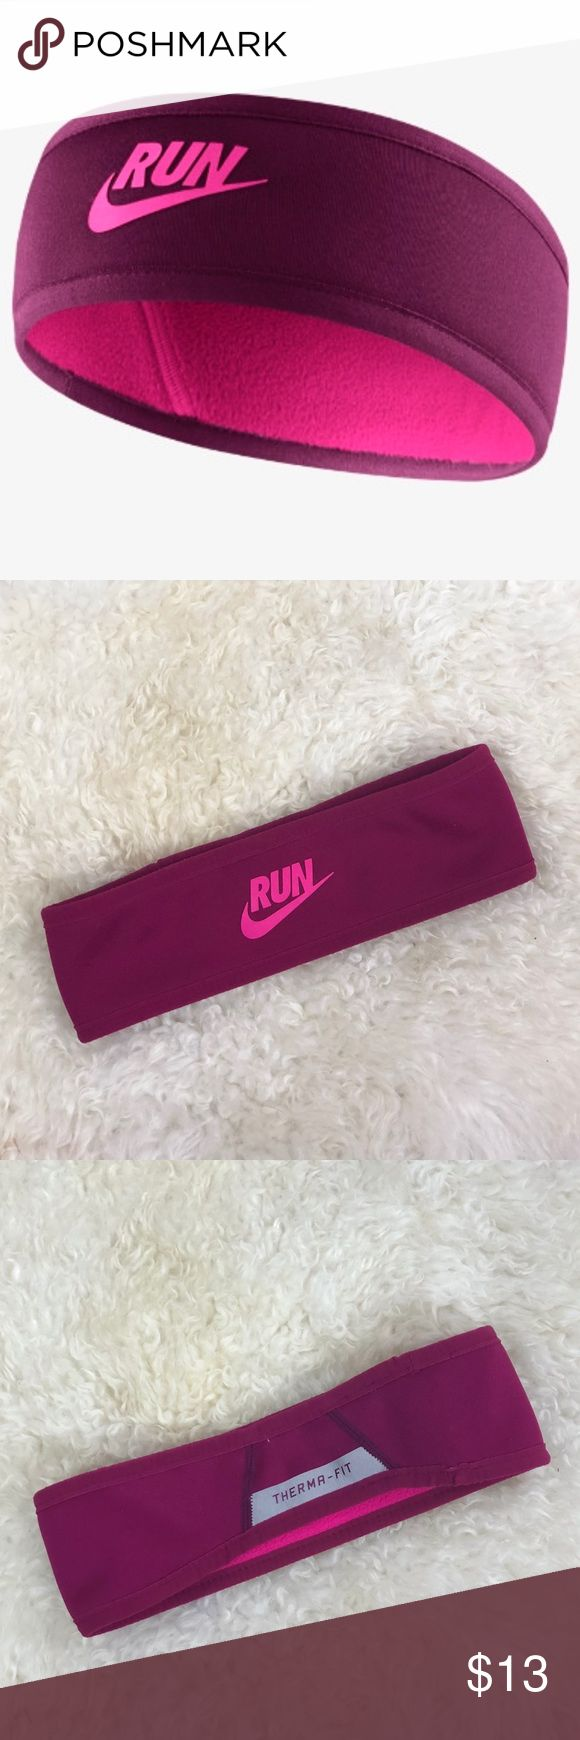 Nike Therma Fit Reversible Running Headband Perfect for morning runs outside! Nike Therma Fit Reversible Running Headband Magenta with Hot Pink Lining  One Size and In Great Condition  (B13)  Bundle for Discounted Shipping! Nike Accessories